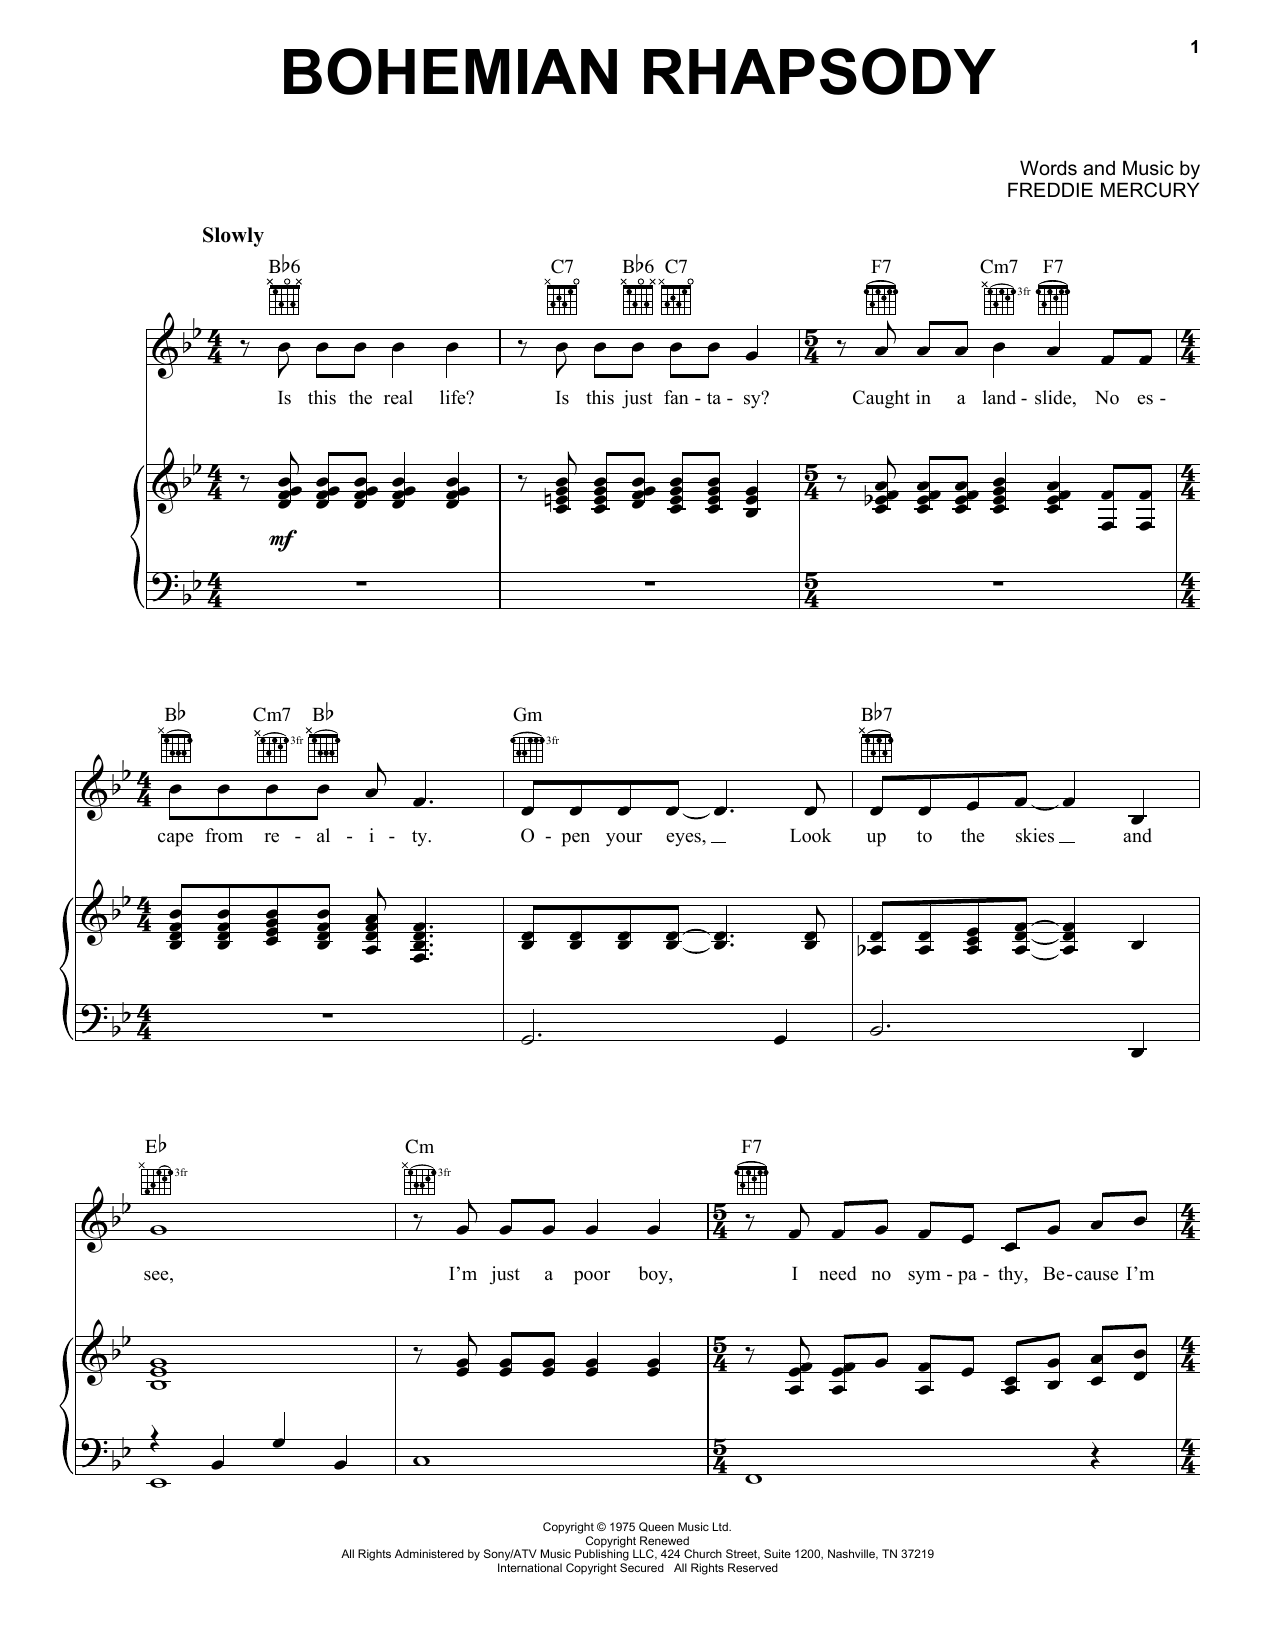 Queen Bohemian Rhapsody Sheet Music Notes Chords